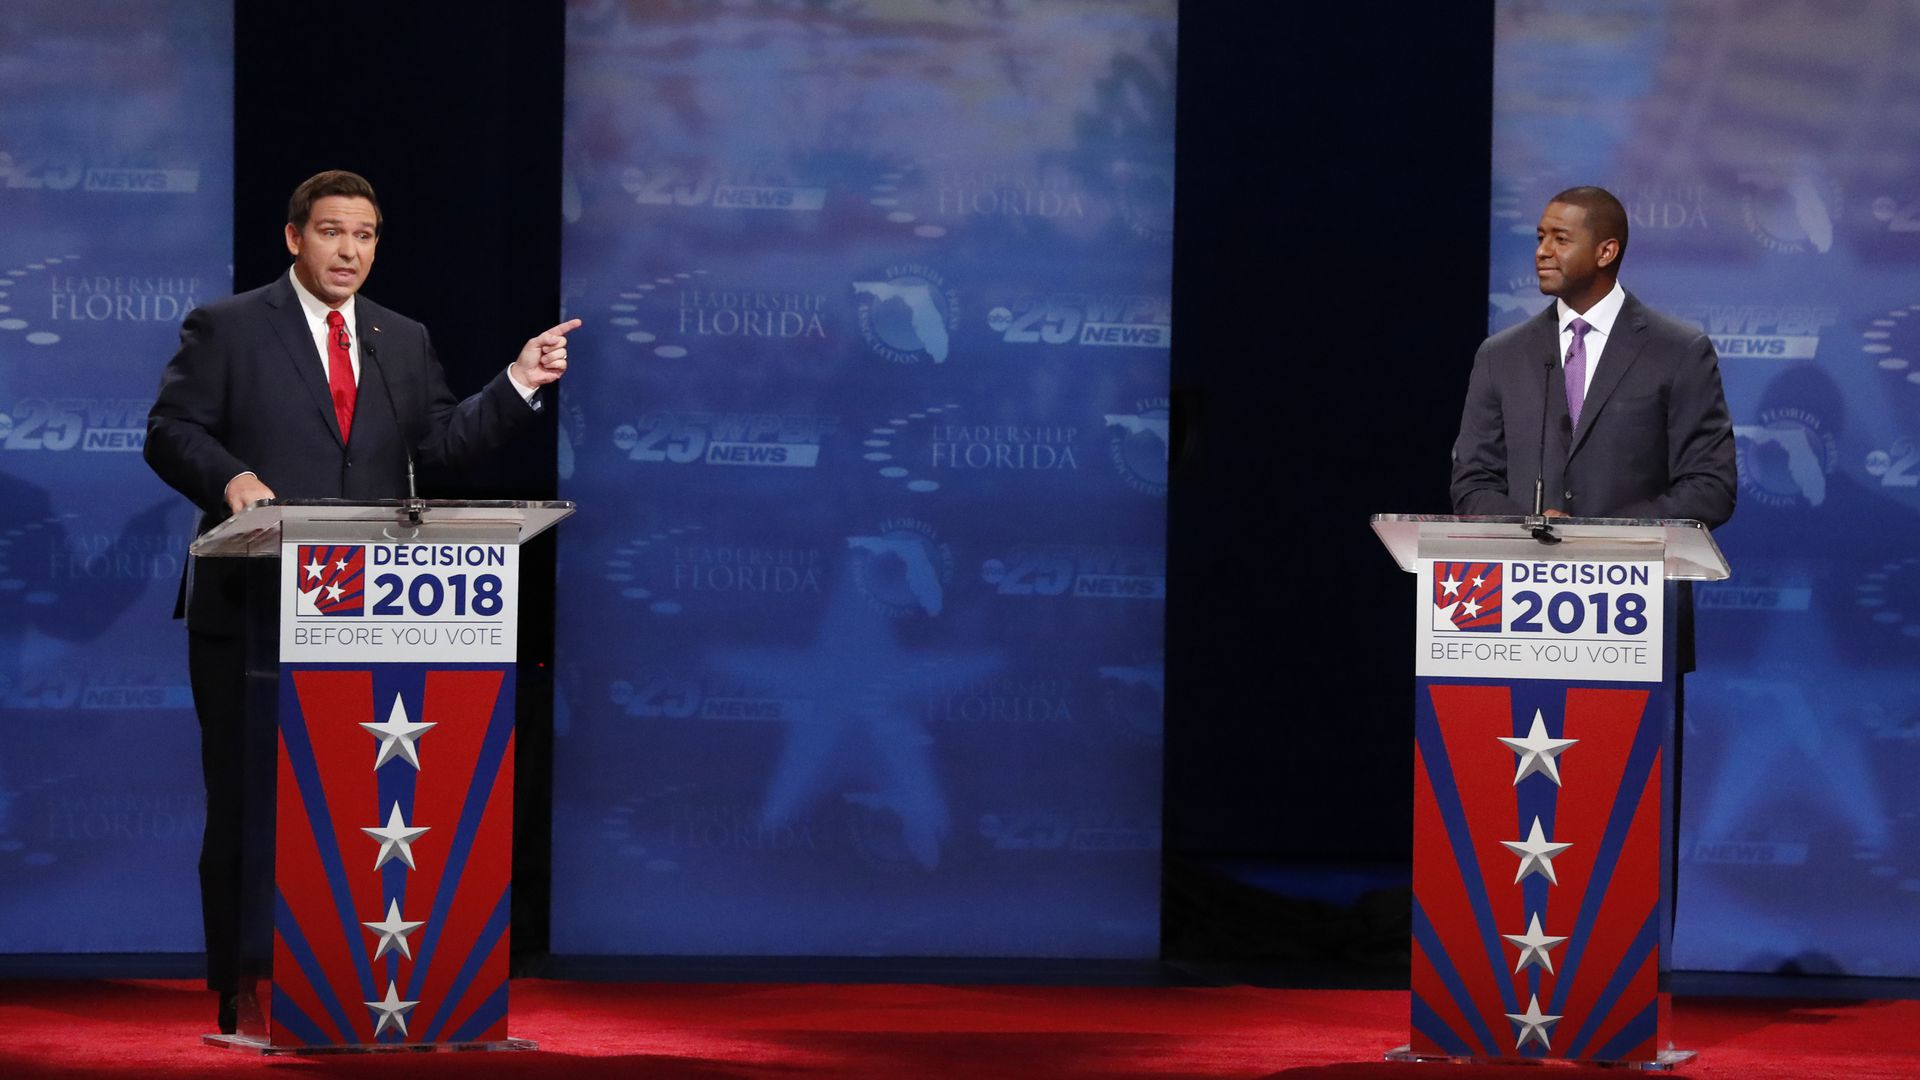 Ron DeSantis and Andrew Gillum on a debate stage.